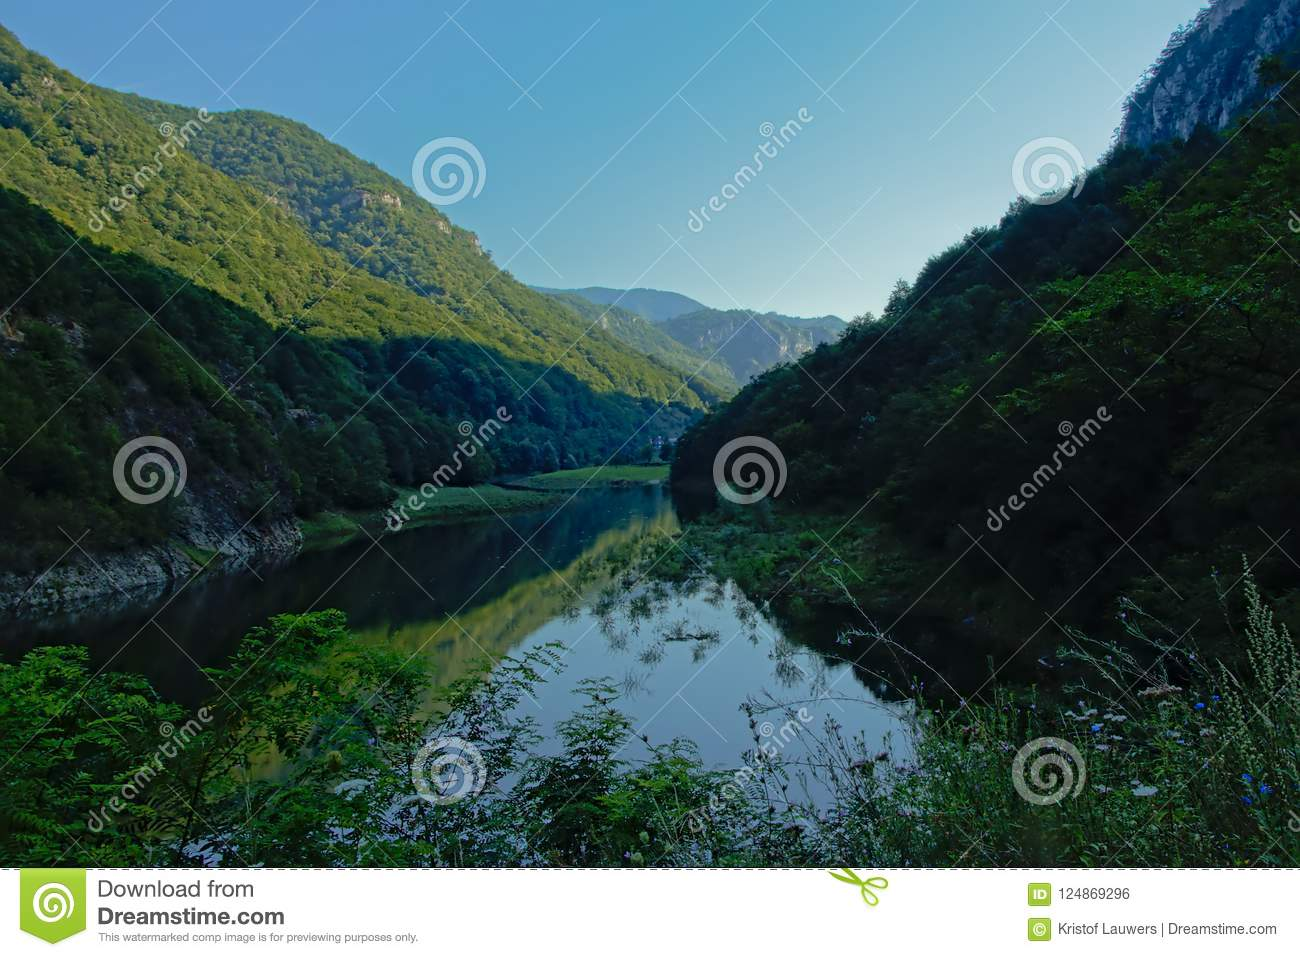 River Danube in between Romanian mountains in early morning light